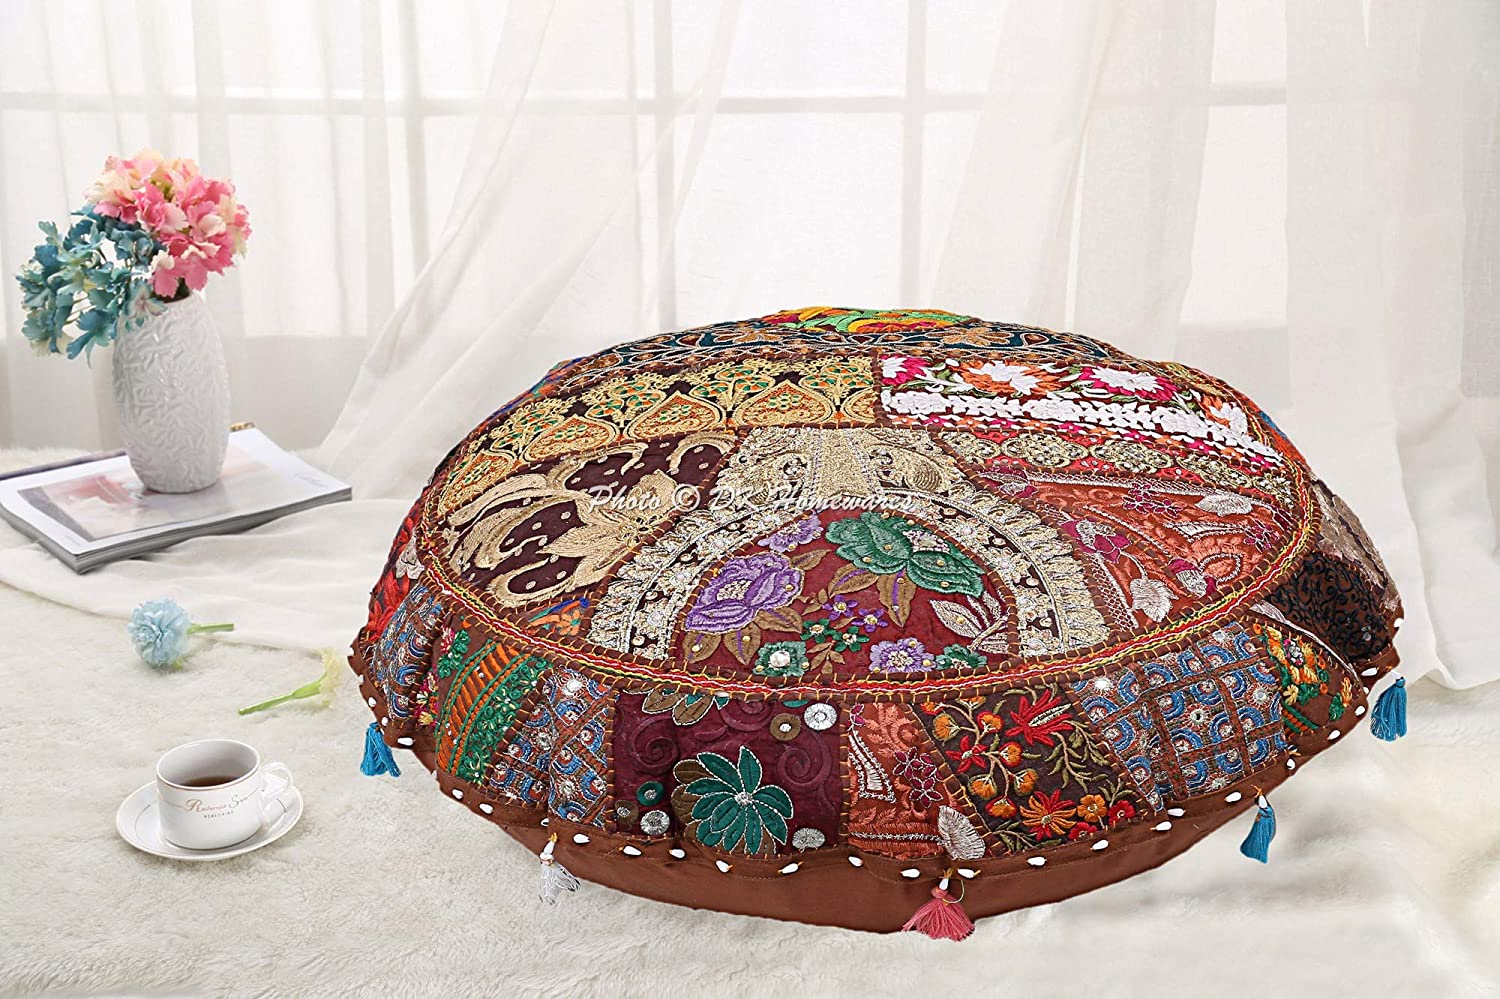 DK Homewares Round Traditional Bohemian Excellent Floor depot Cushions for Kids